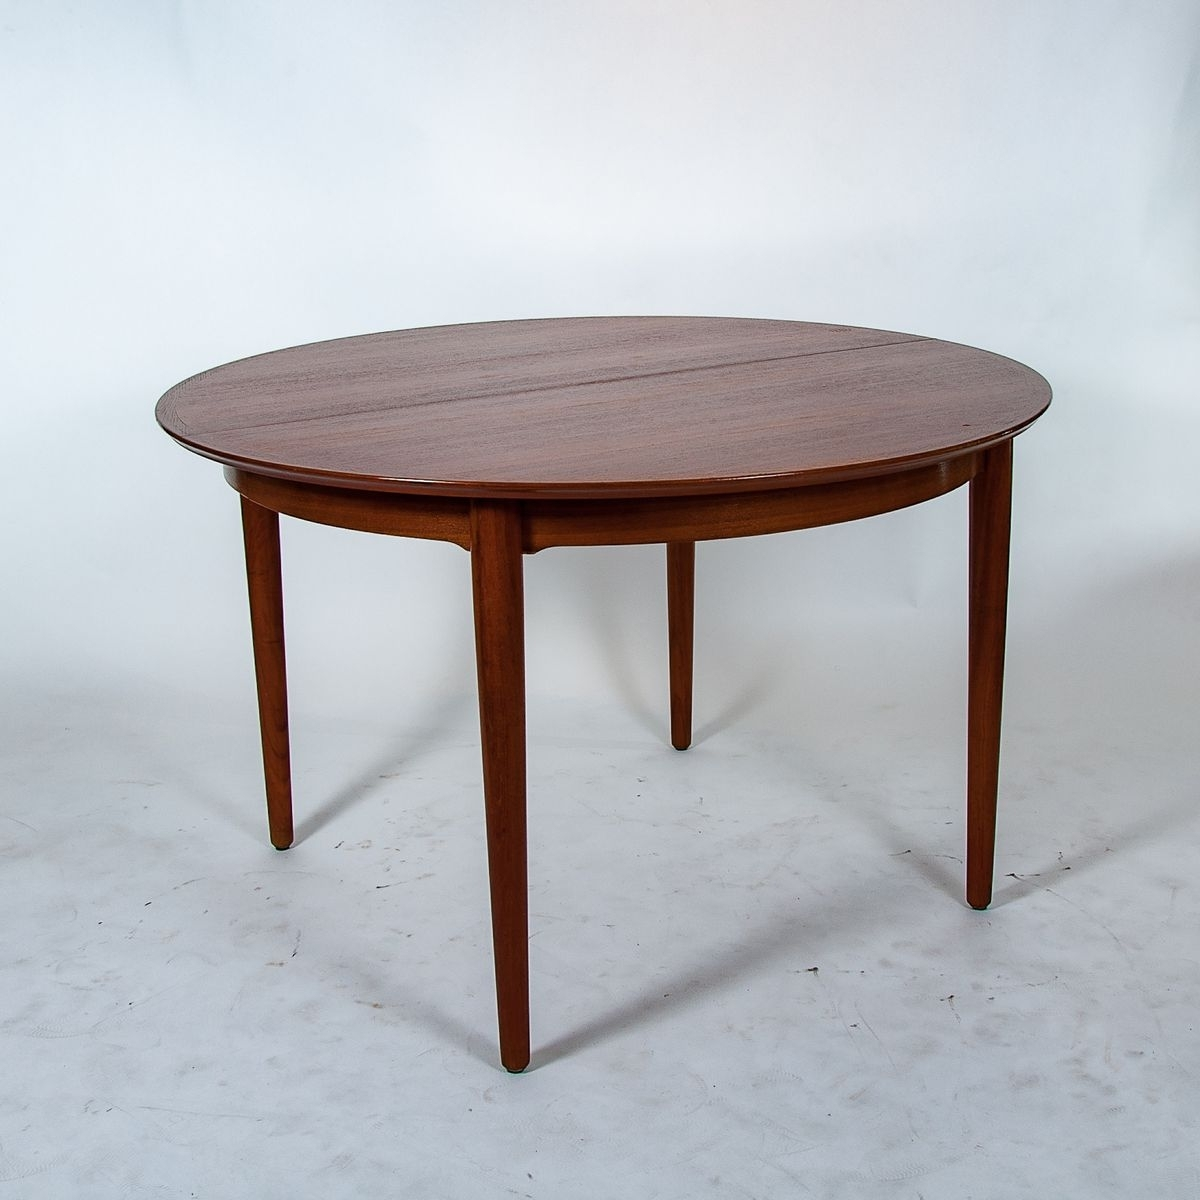 Preferred Mid Century Danish Design Dining Tablearne Vodder For Sibast Within Danish Dining Tables (View 25 of 25)